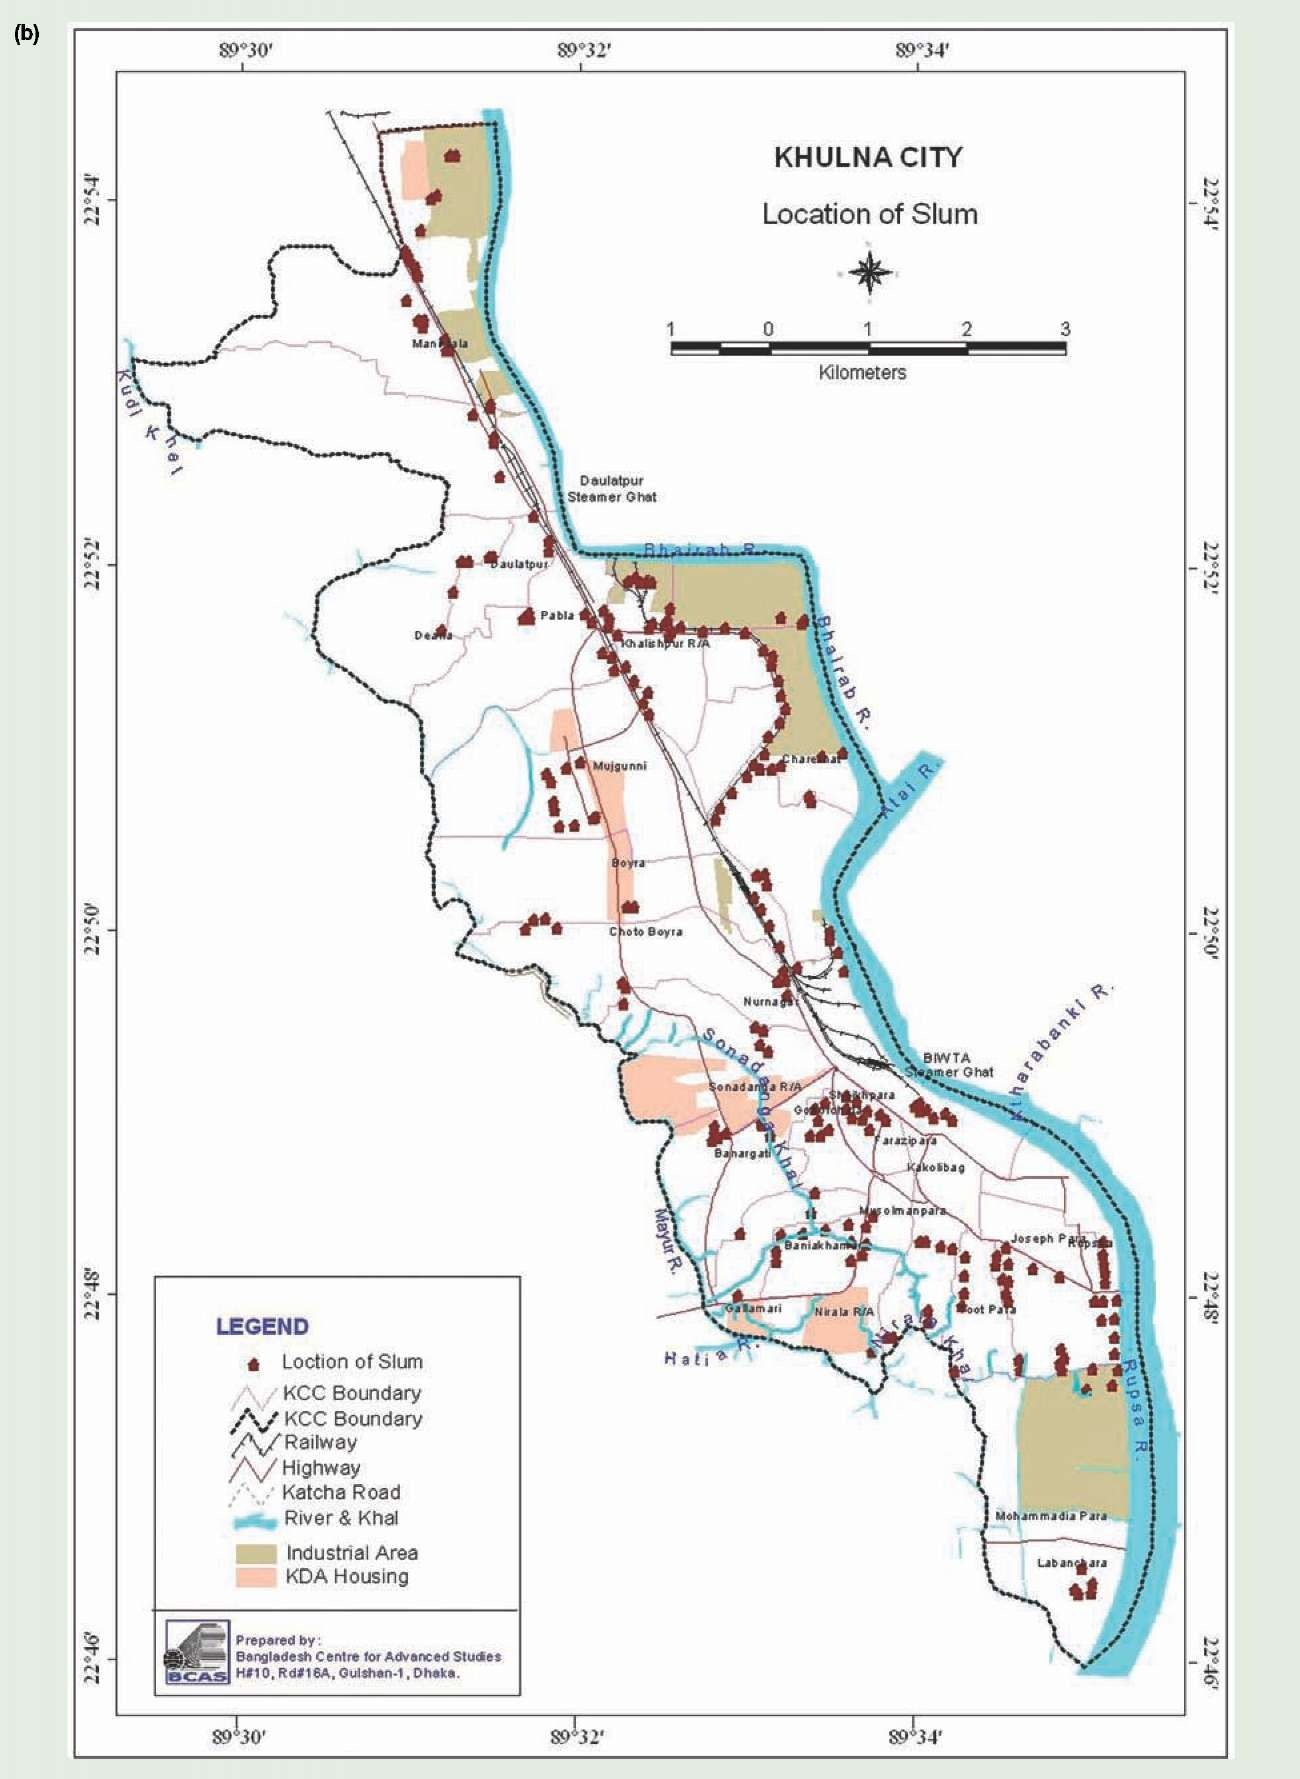 Urban Climate Risks Vulnerabilities And Impacts Climate Change - Map of khulna city